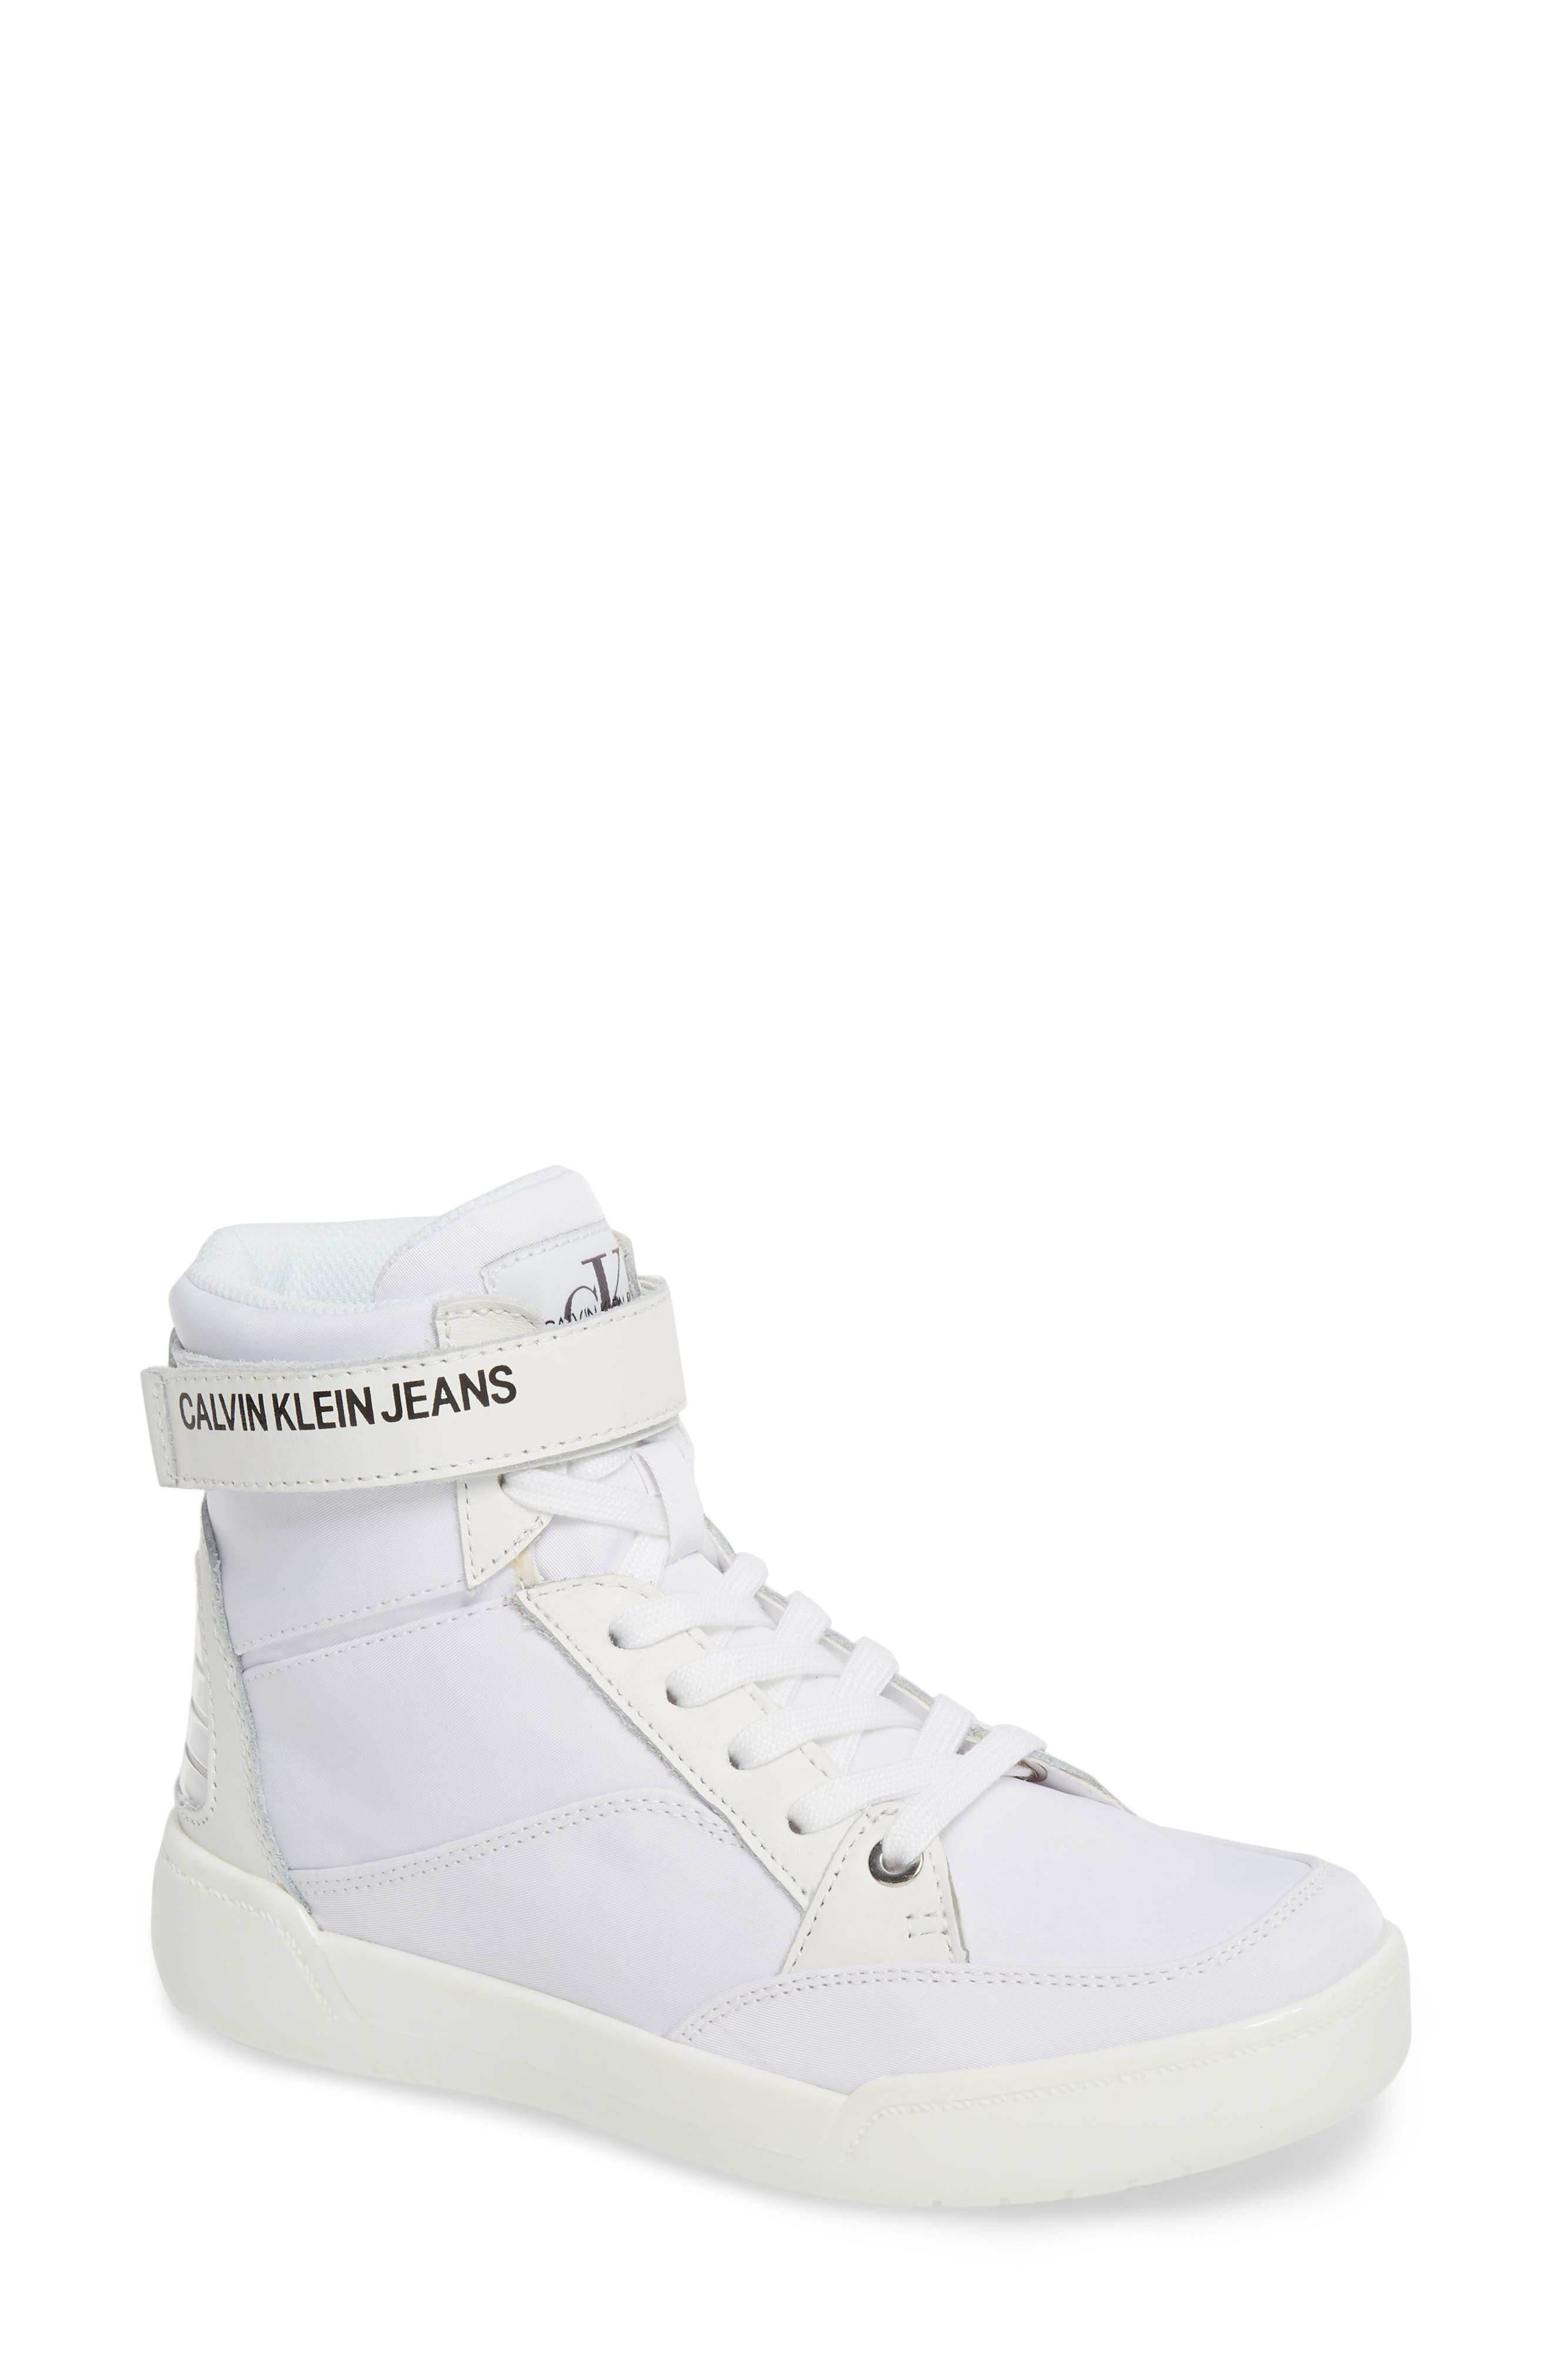 Nelda High Top Sneaker,                             Main thumbnail 1, color,                             WHITE LEATHER